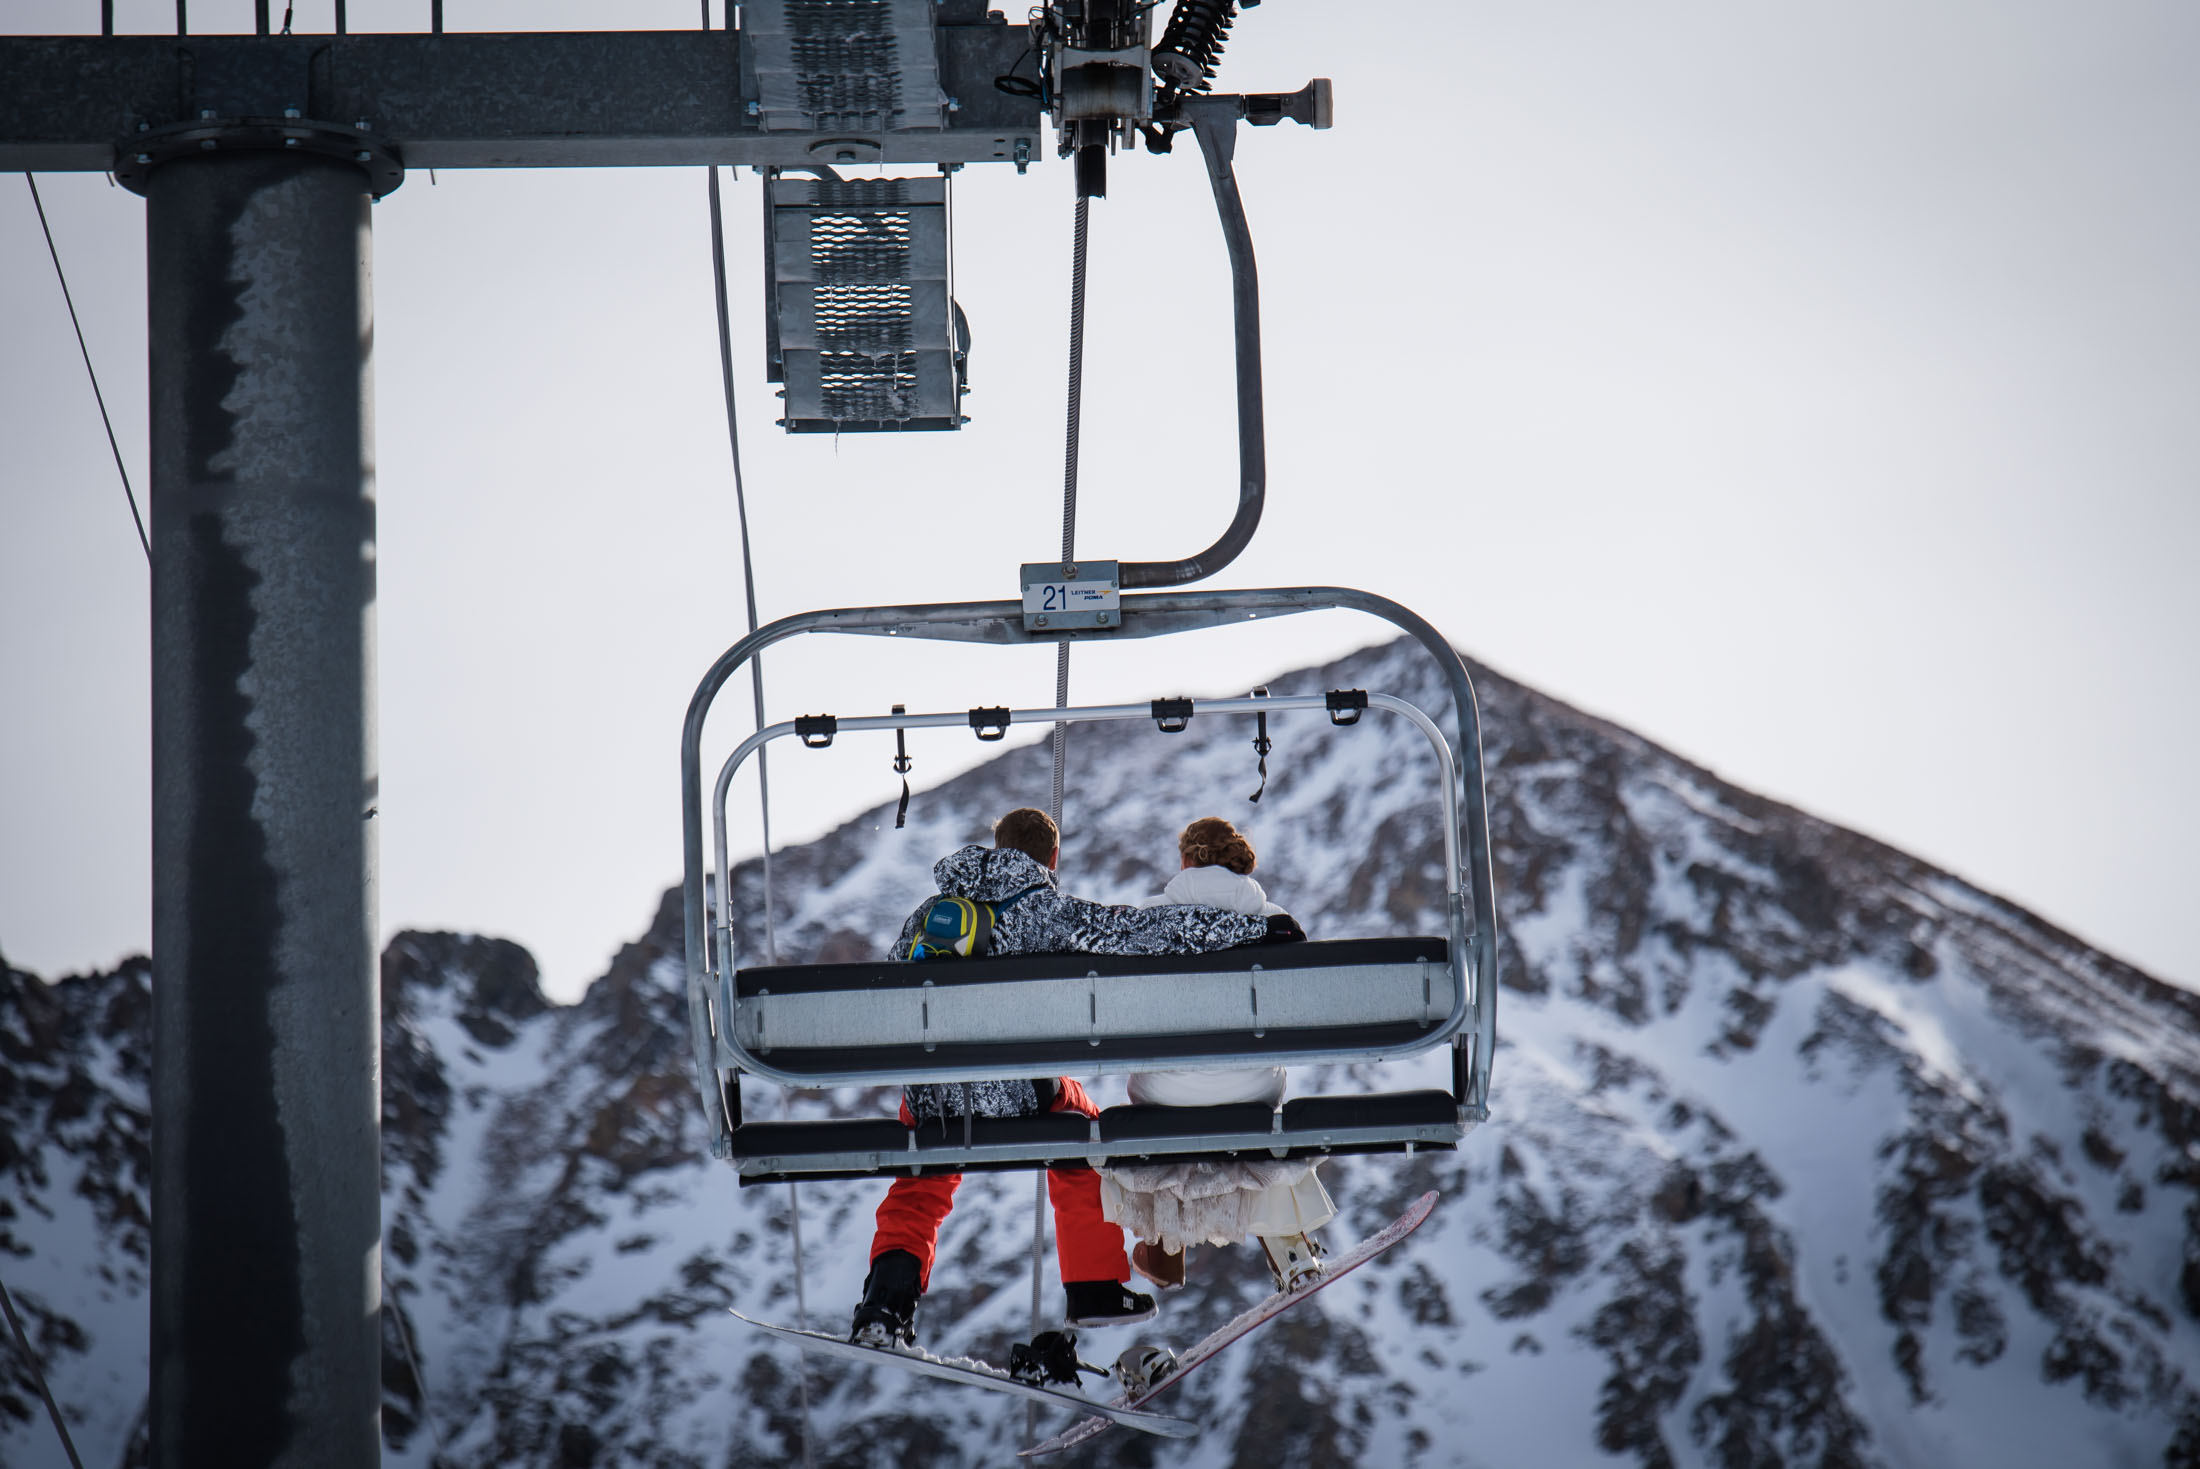 Couple together on ski lift for their snowboarding elopement at Arapahoe Basin Resort